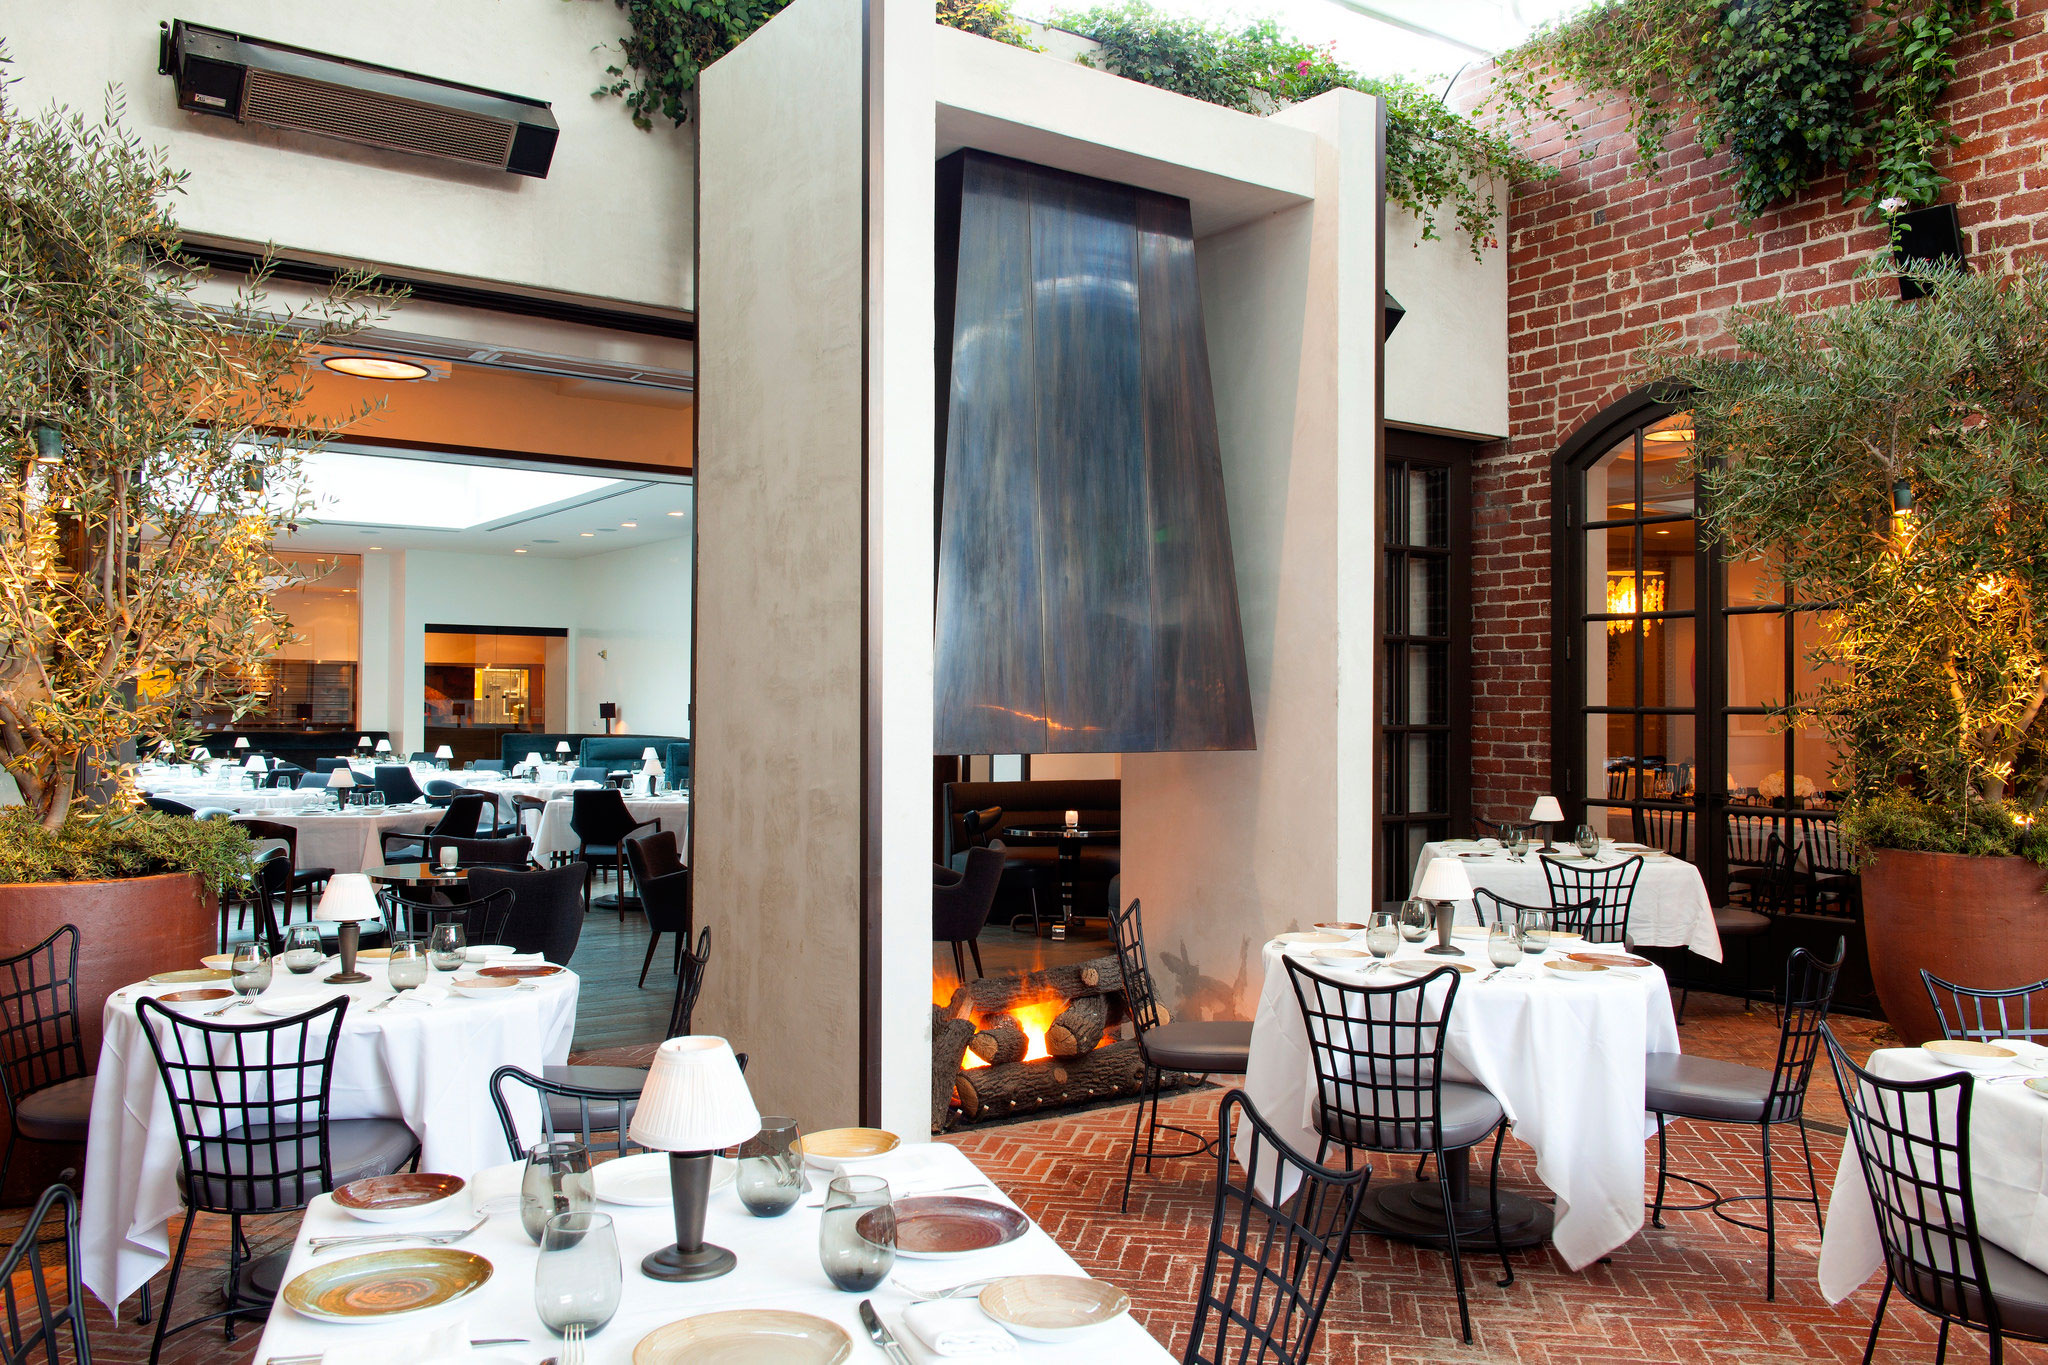 Spago, a partner of AKA Beverly Hills, has become one of the most popular restaurants on the street